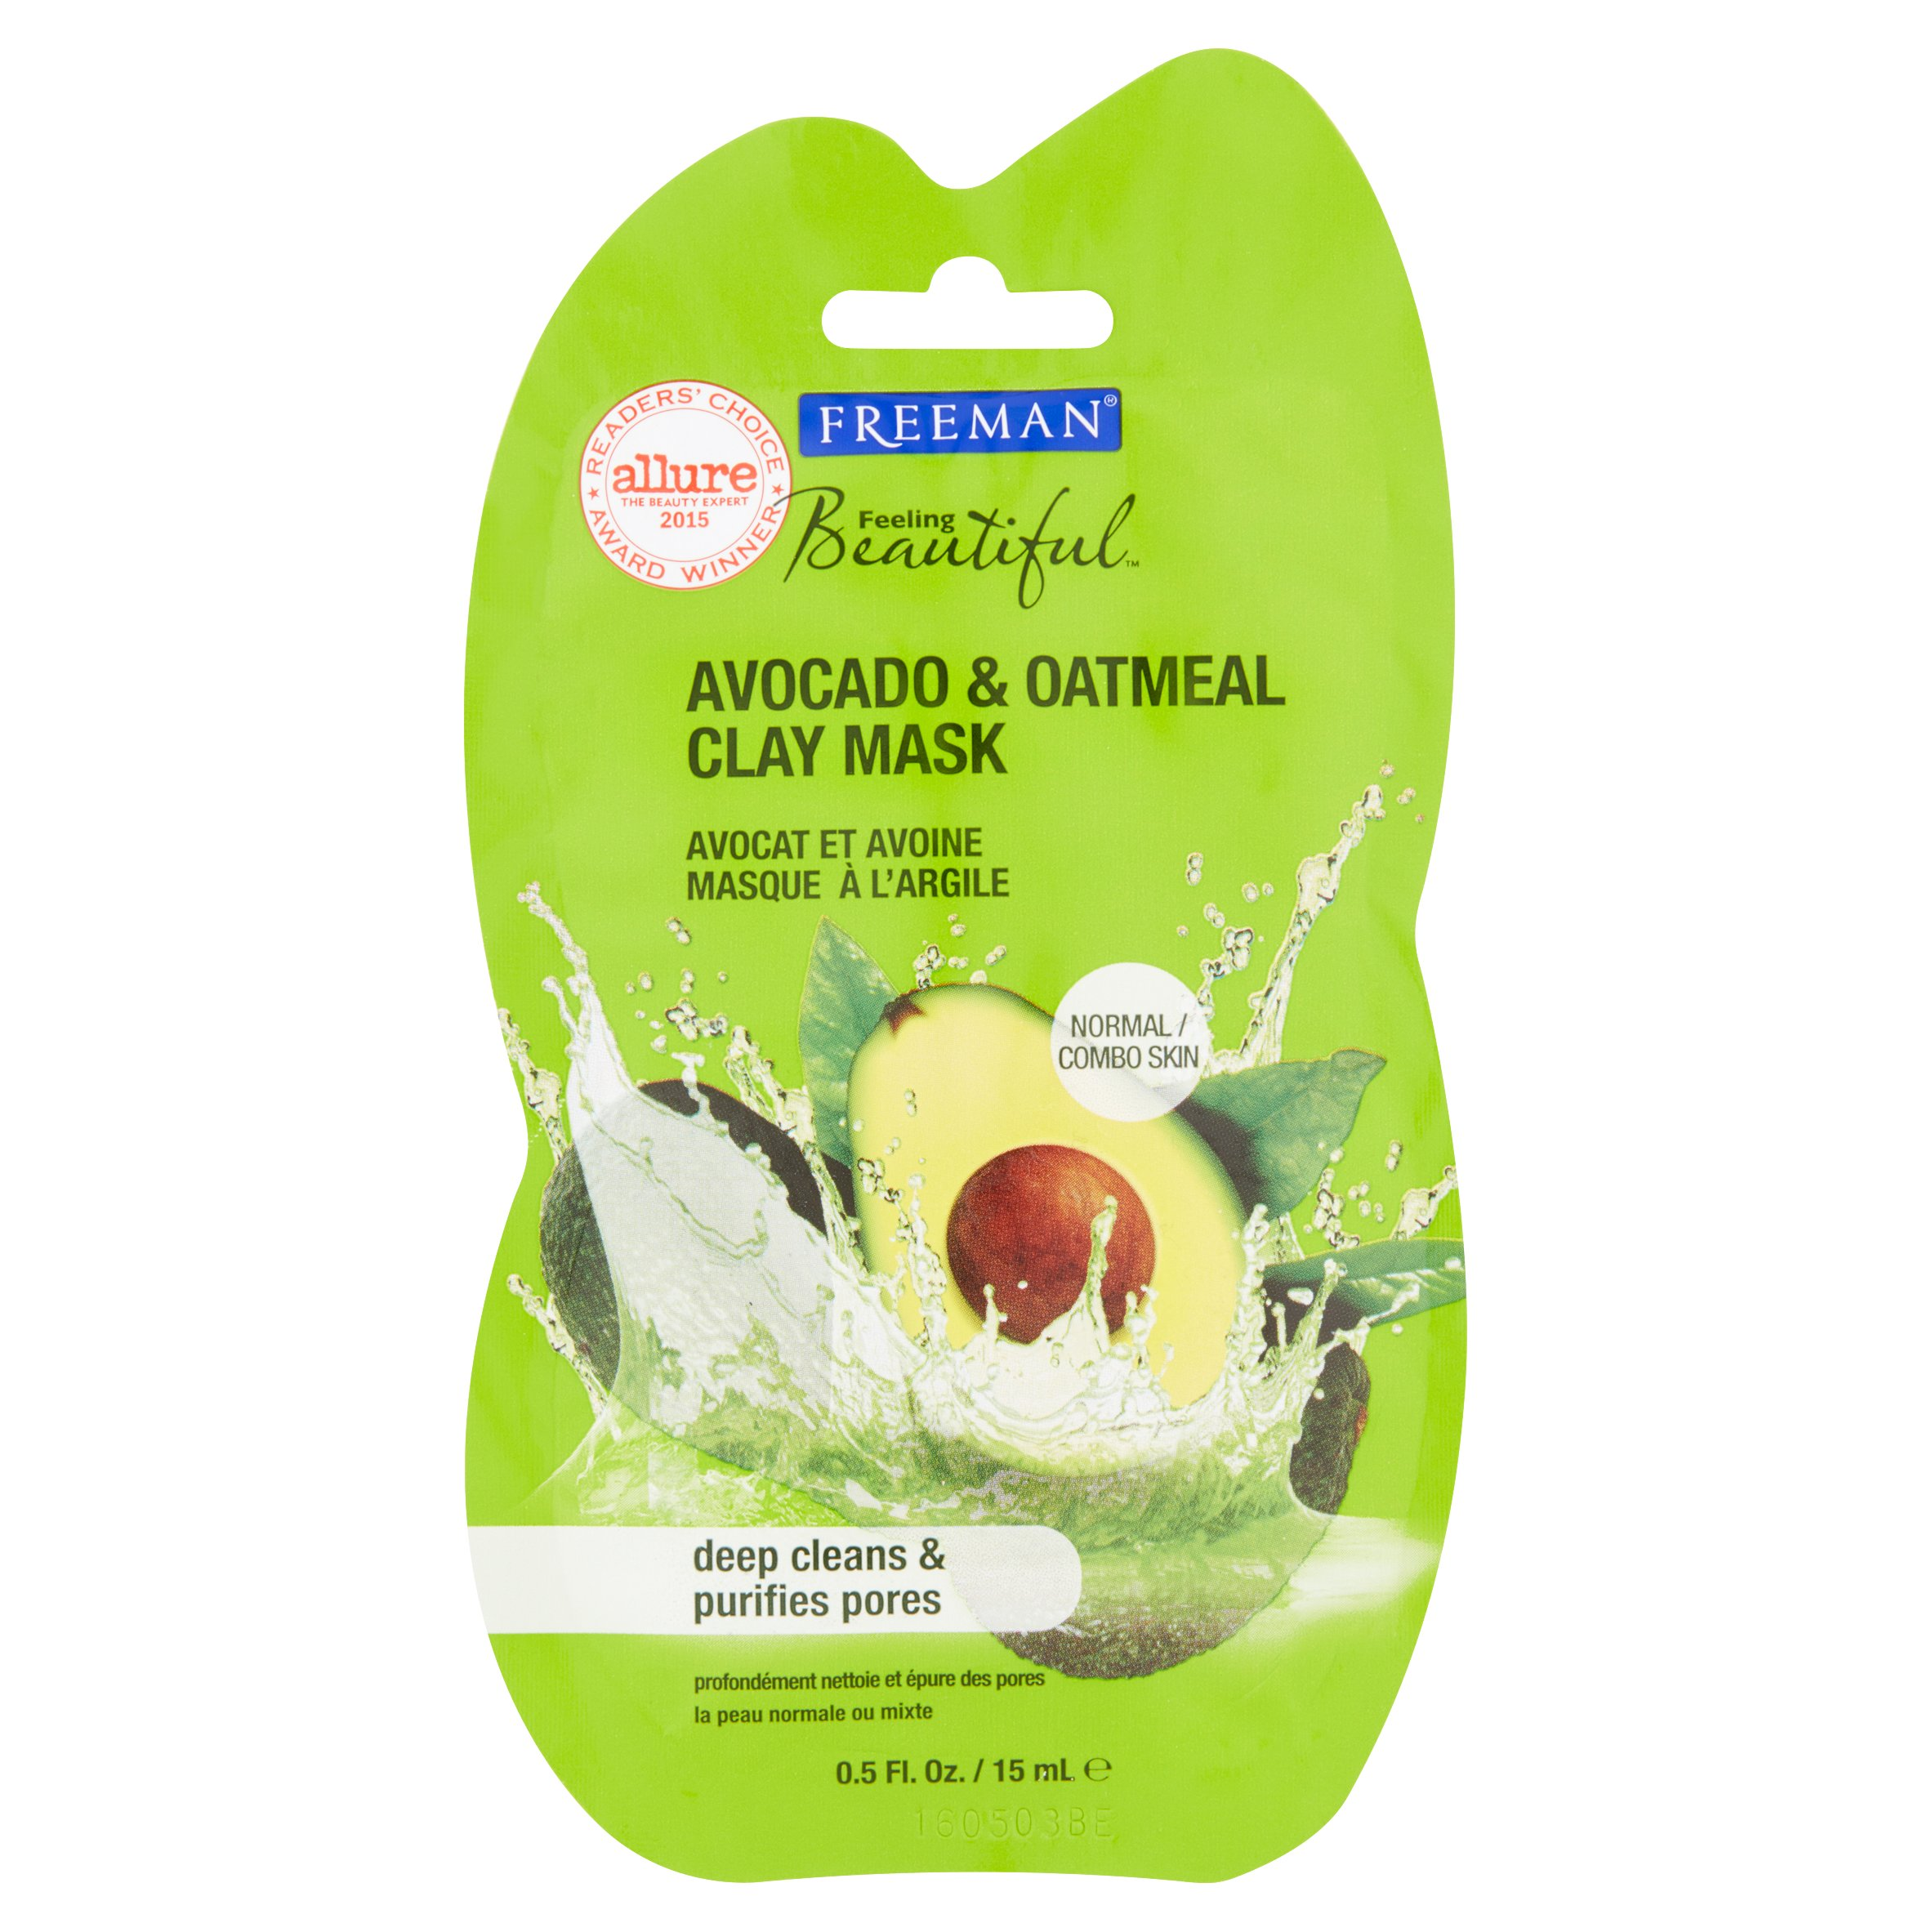 Freeman Feeling Beautiful Clay Face Mask Avocado & Oatmeal Clay, 0.5 fl oz